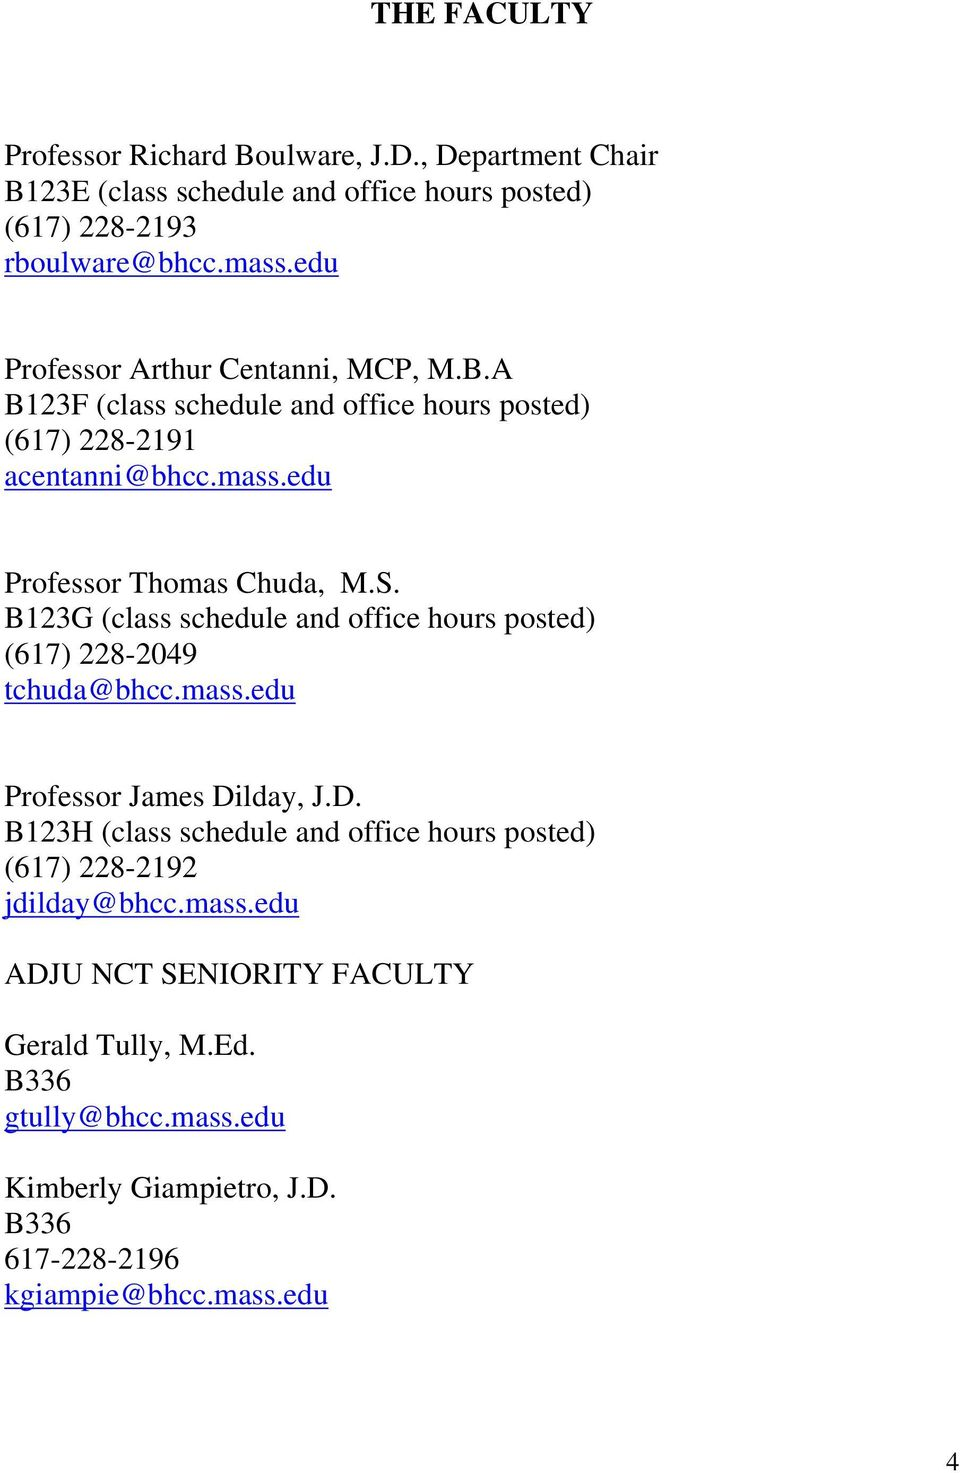 B123G (class schedule and office hours posted) (617) 228-2049 tchuda@bhcc.mass.edu Professor James Di